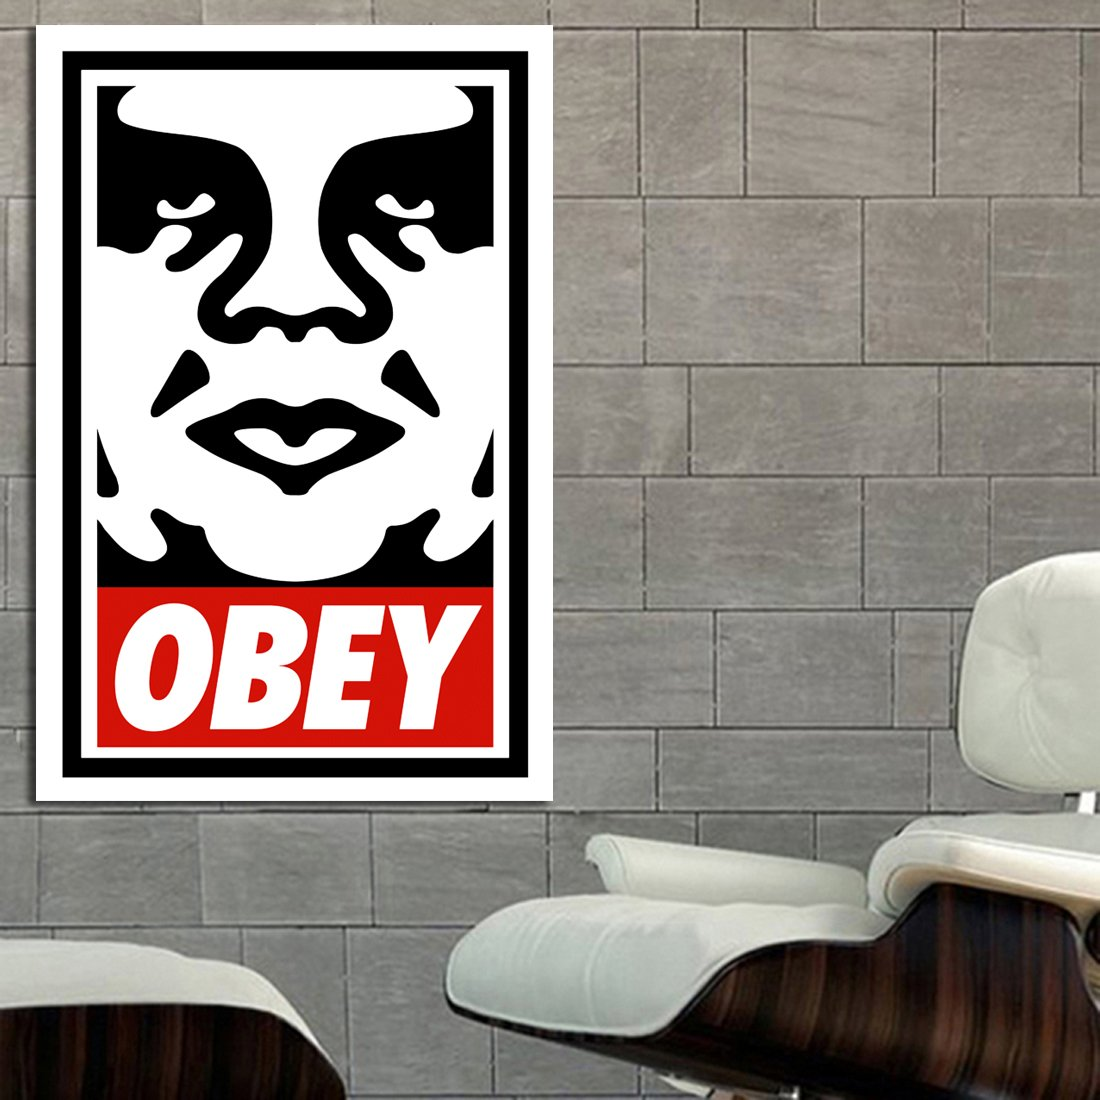 Poster Mural Obey Hypebeast 40x58 inch (100x147 cm) on Adhesive Vinyl